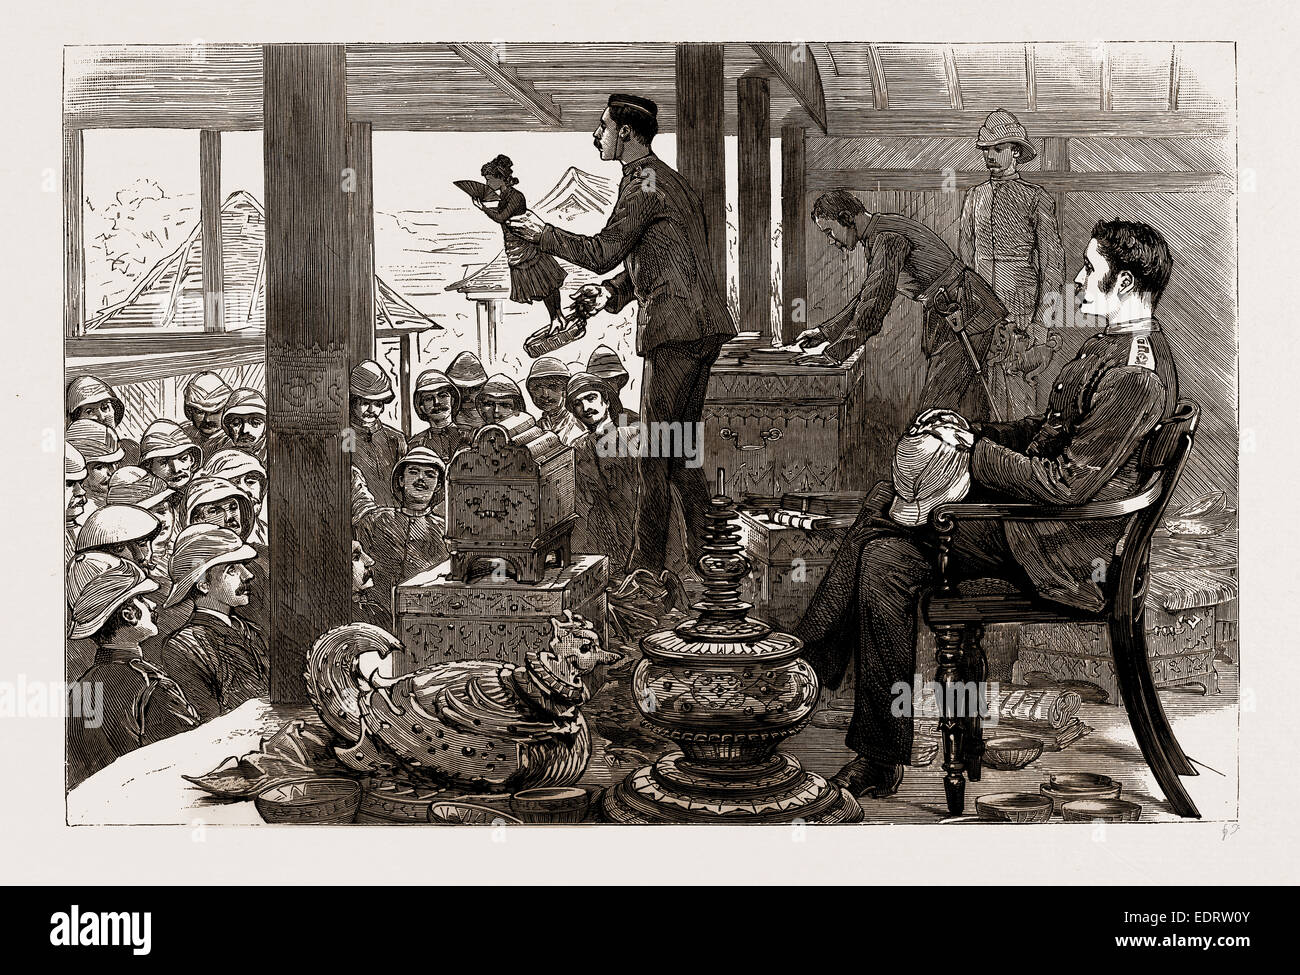 WITH LORD DUFFERIN IN BURMA: A LOOT AUCTION IN THE PALACE, MANDALAY, 1886 - Stock Image